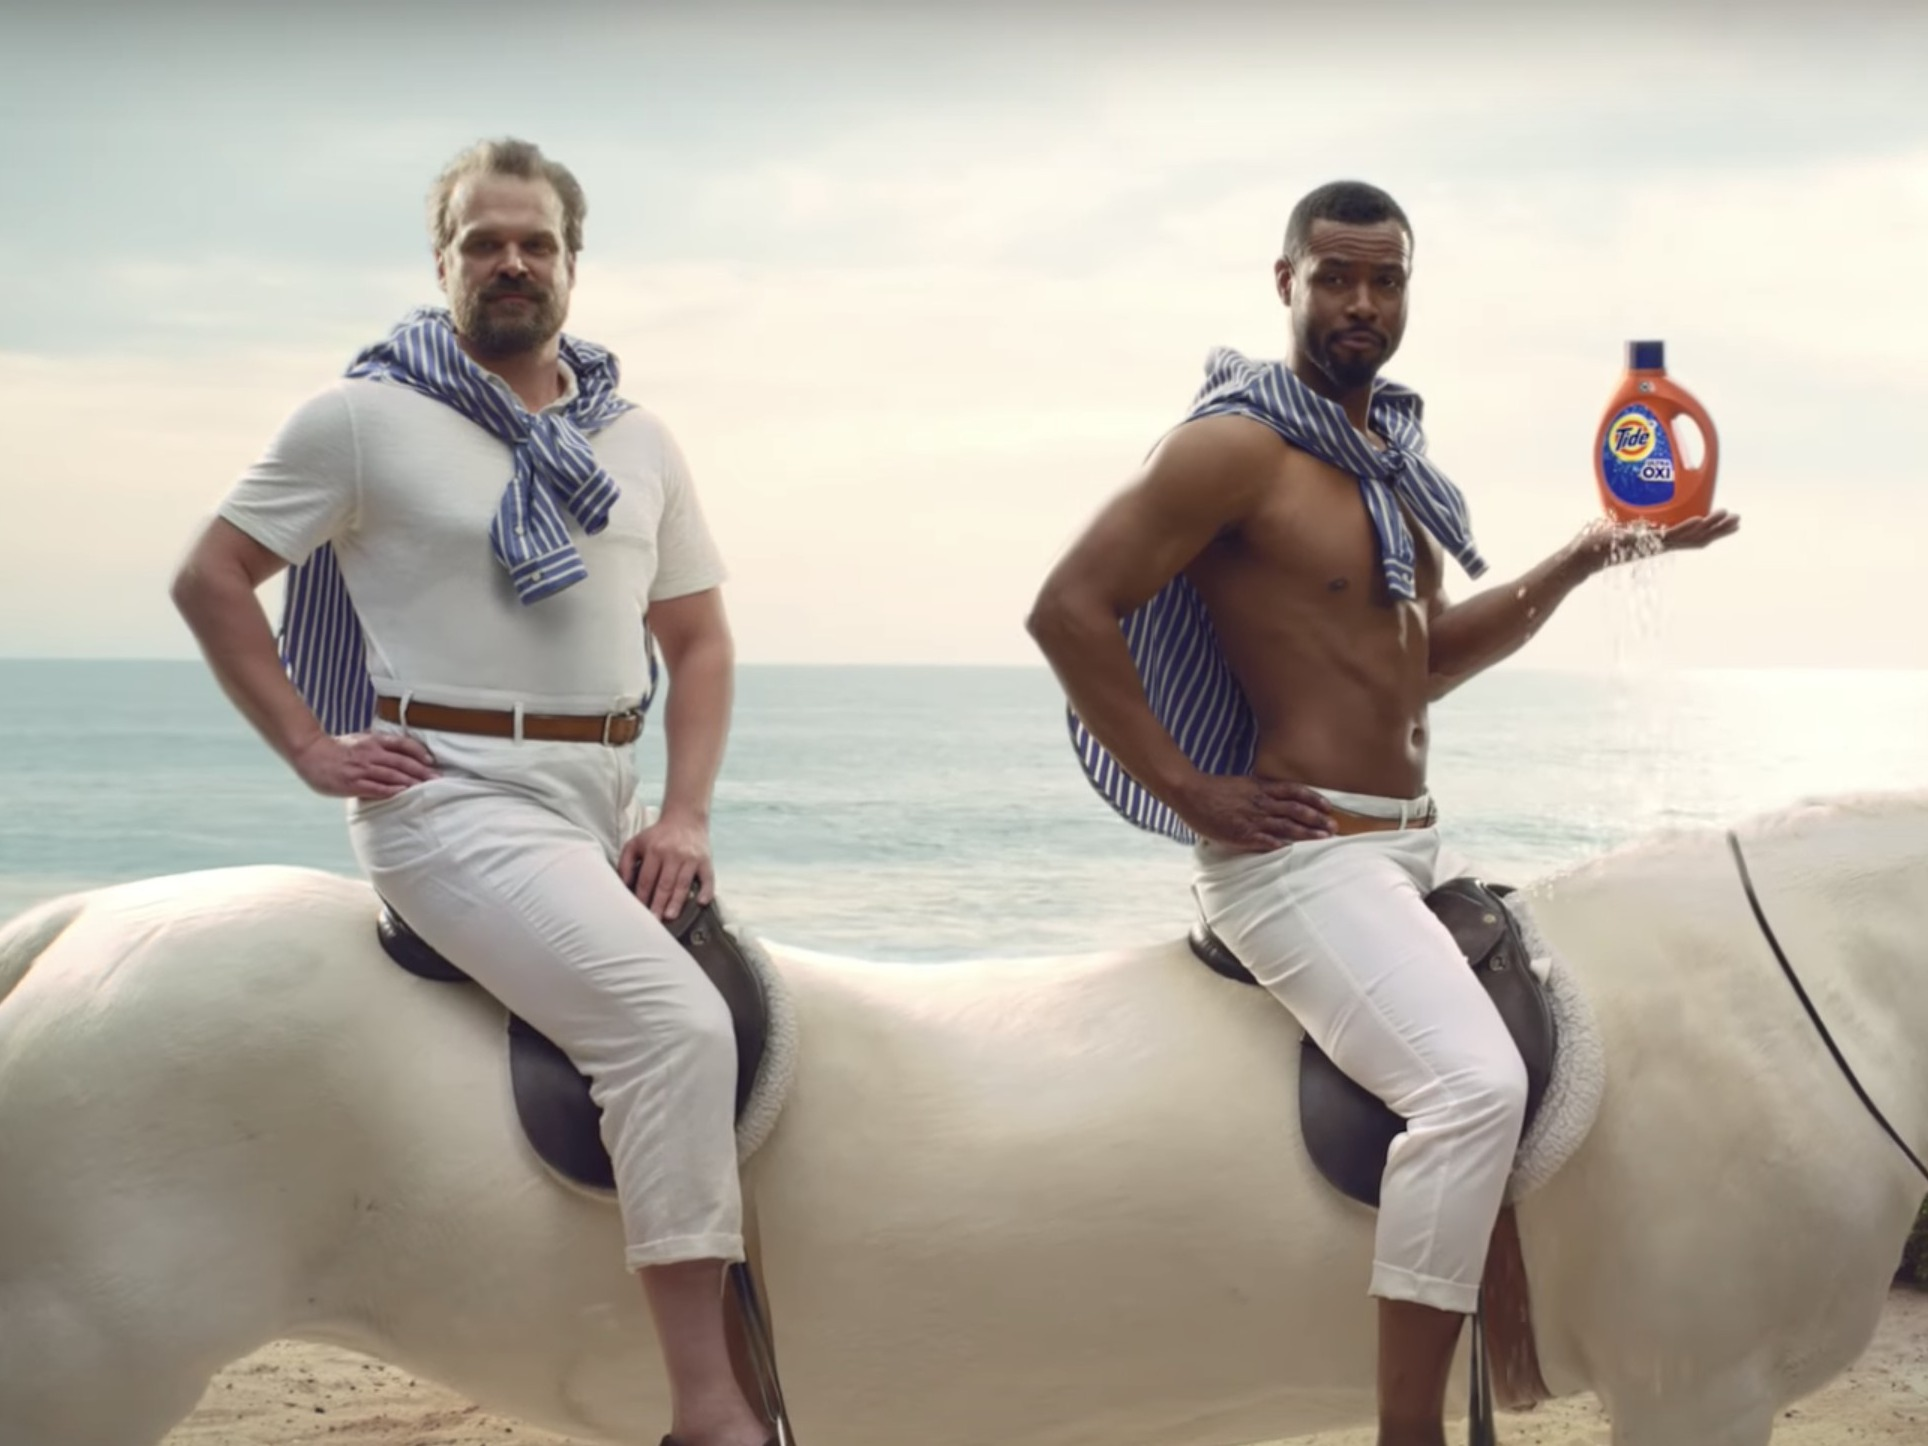 Internet's going gaga over hilarious Doritos Super Bowl ad